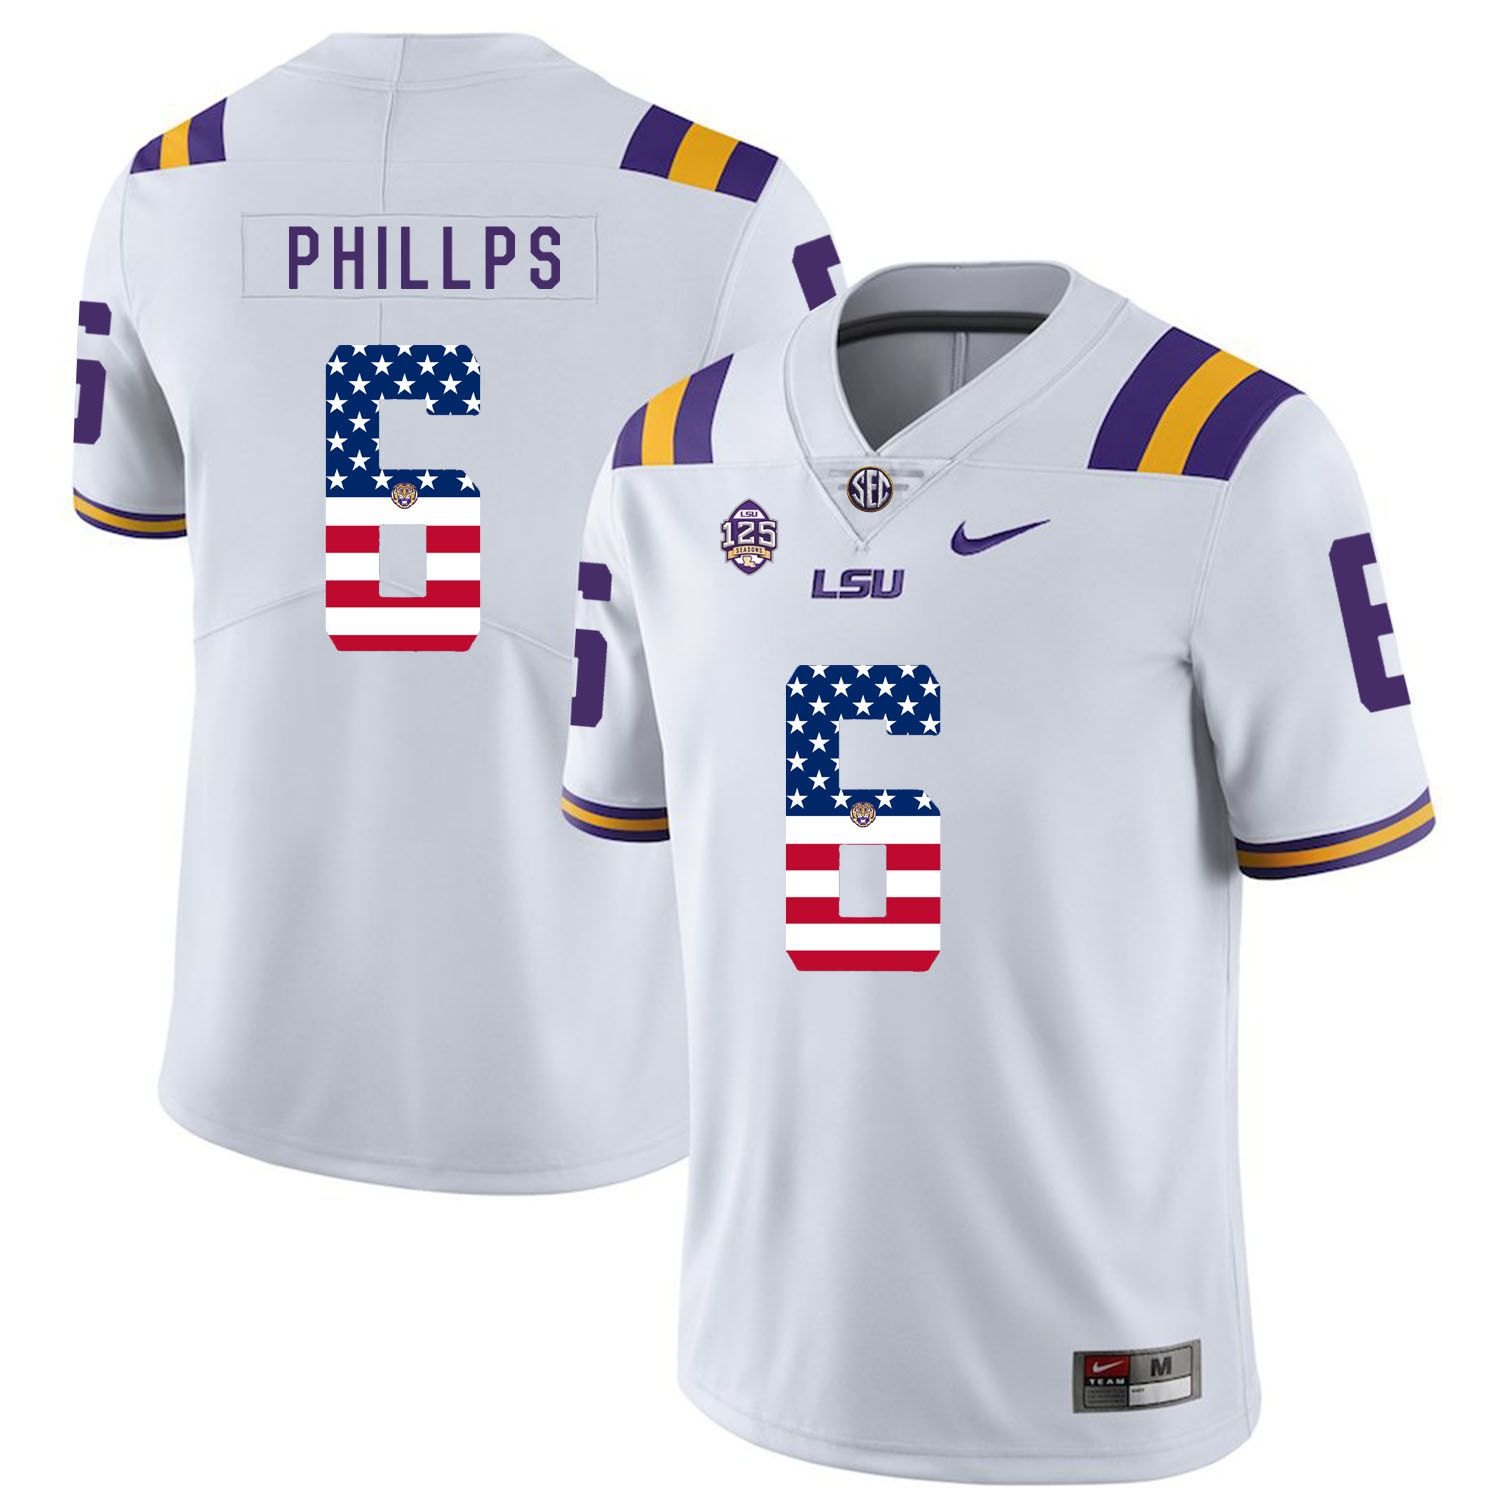 Men LSU Tigers 6 Phillps White Flag Customized NCAA Jerseys